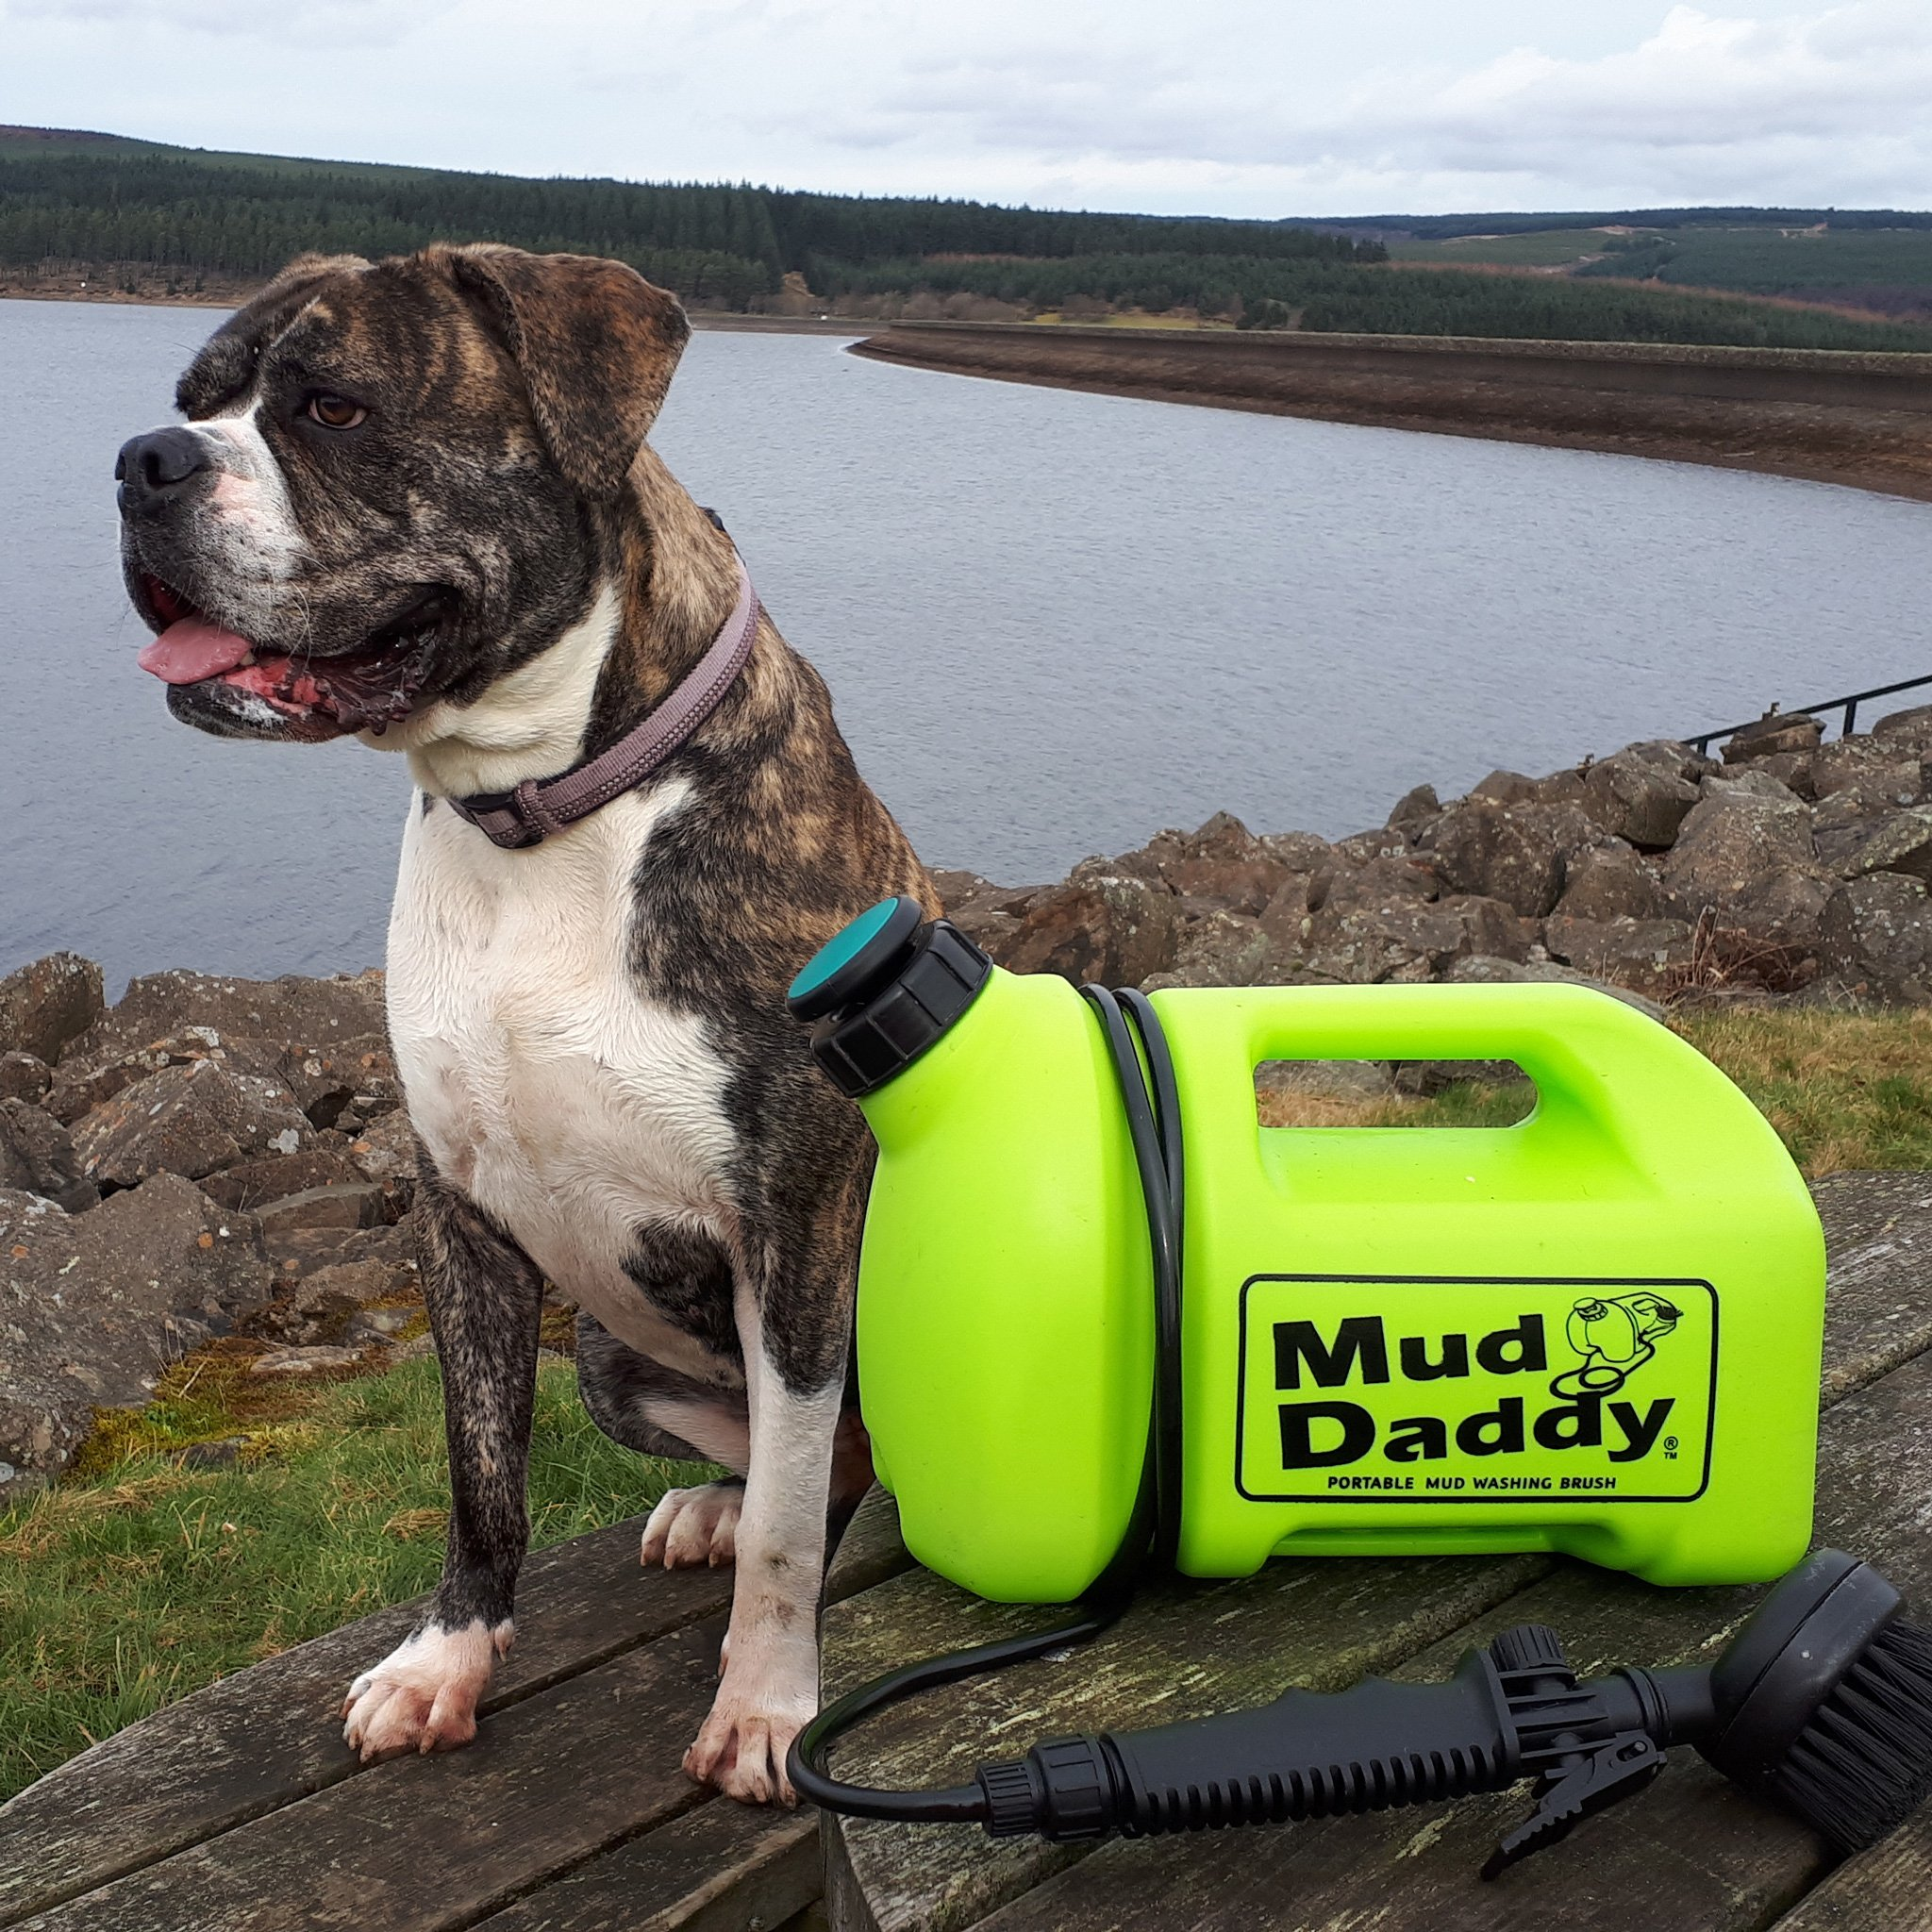 Mud Daddy 5 Litre Portable Washing Device